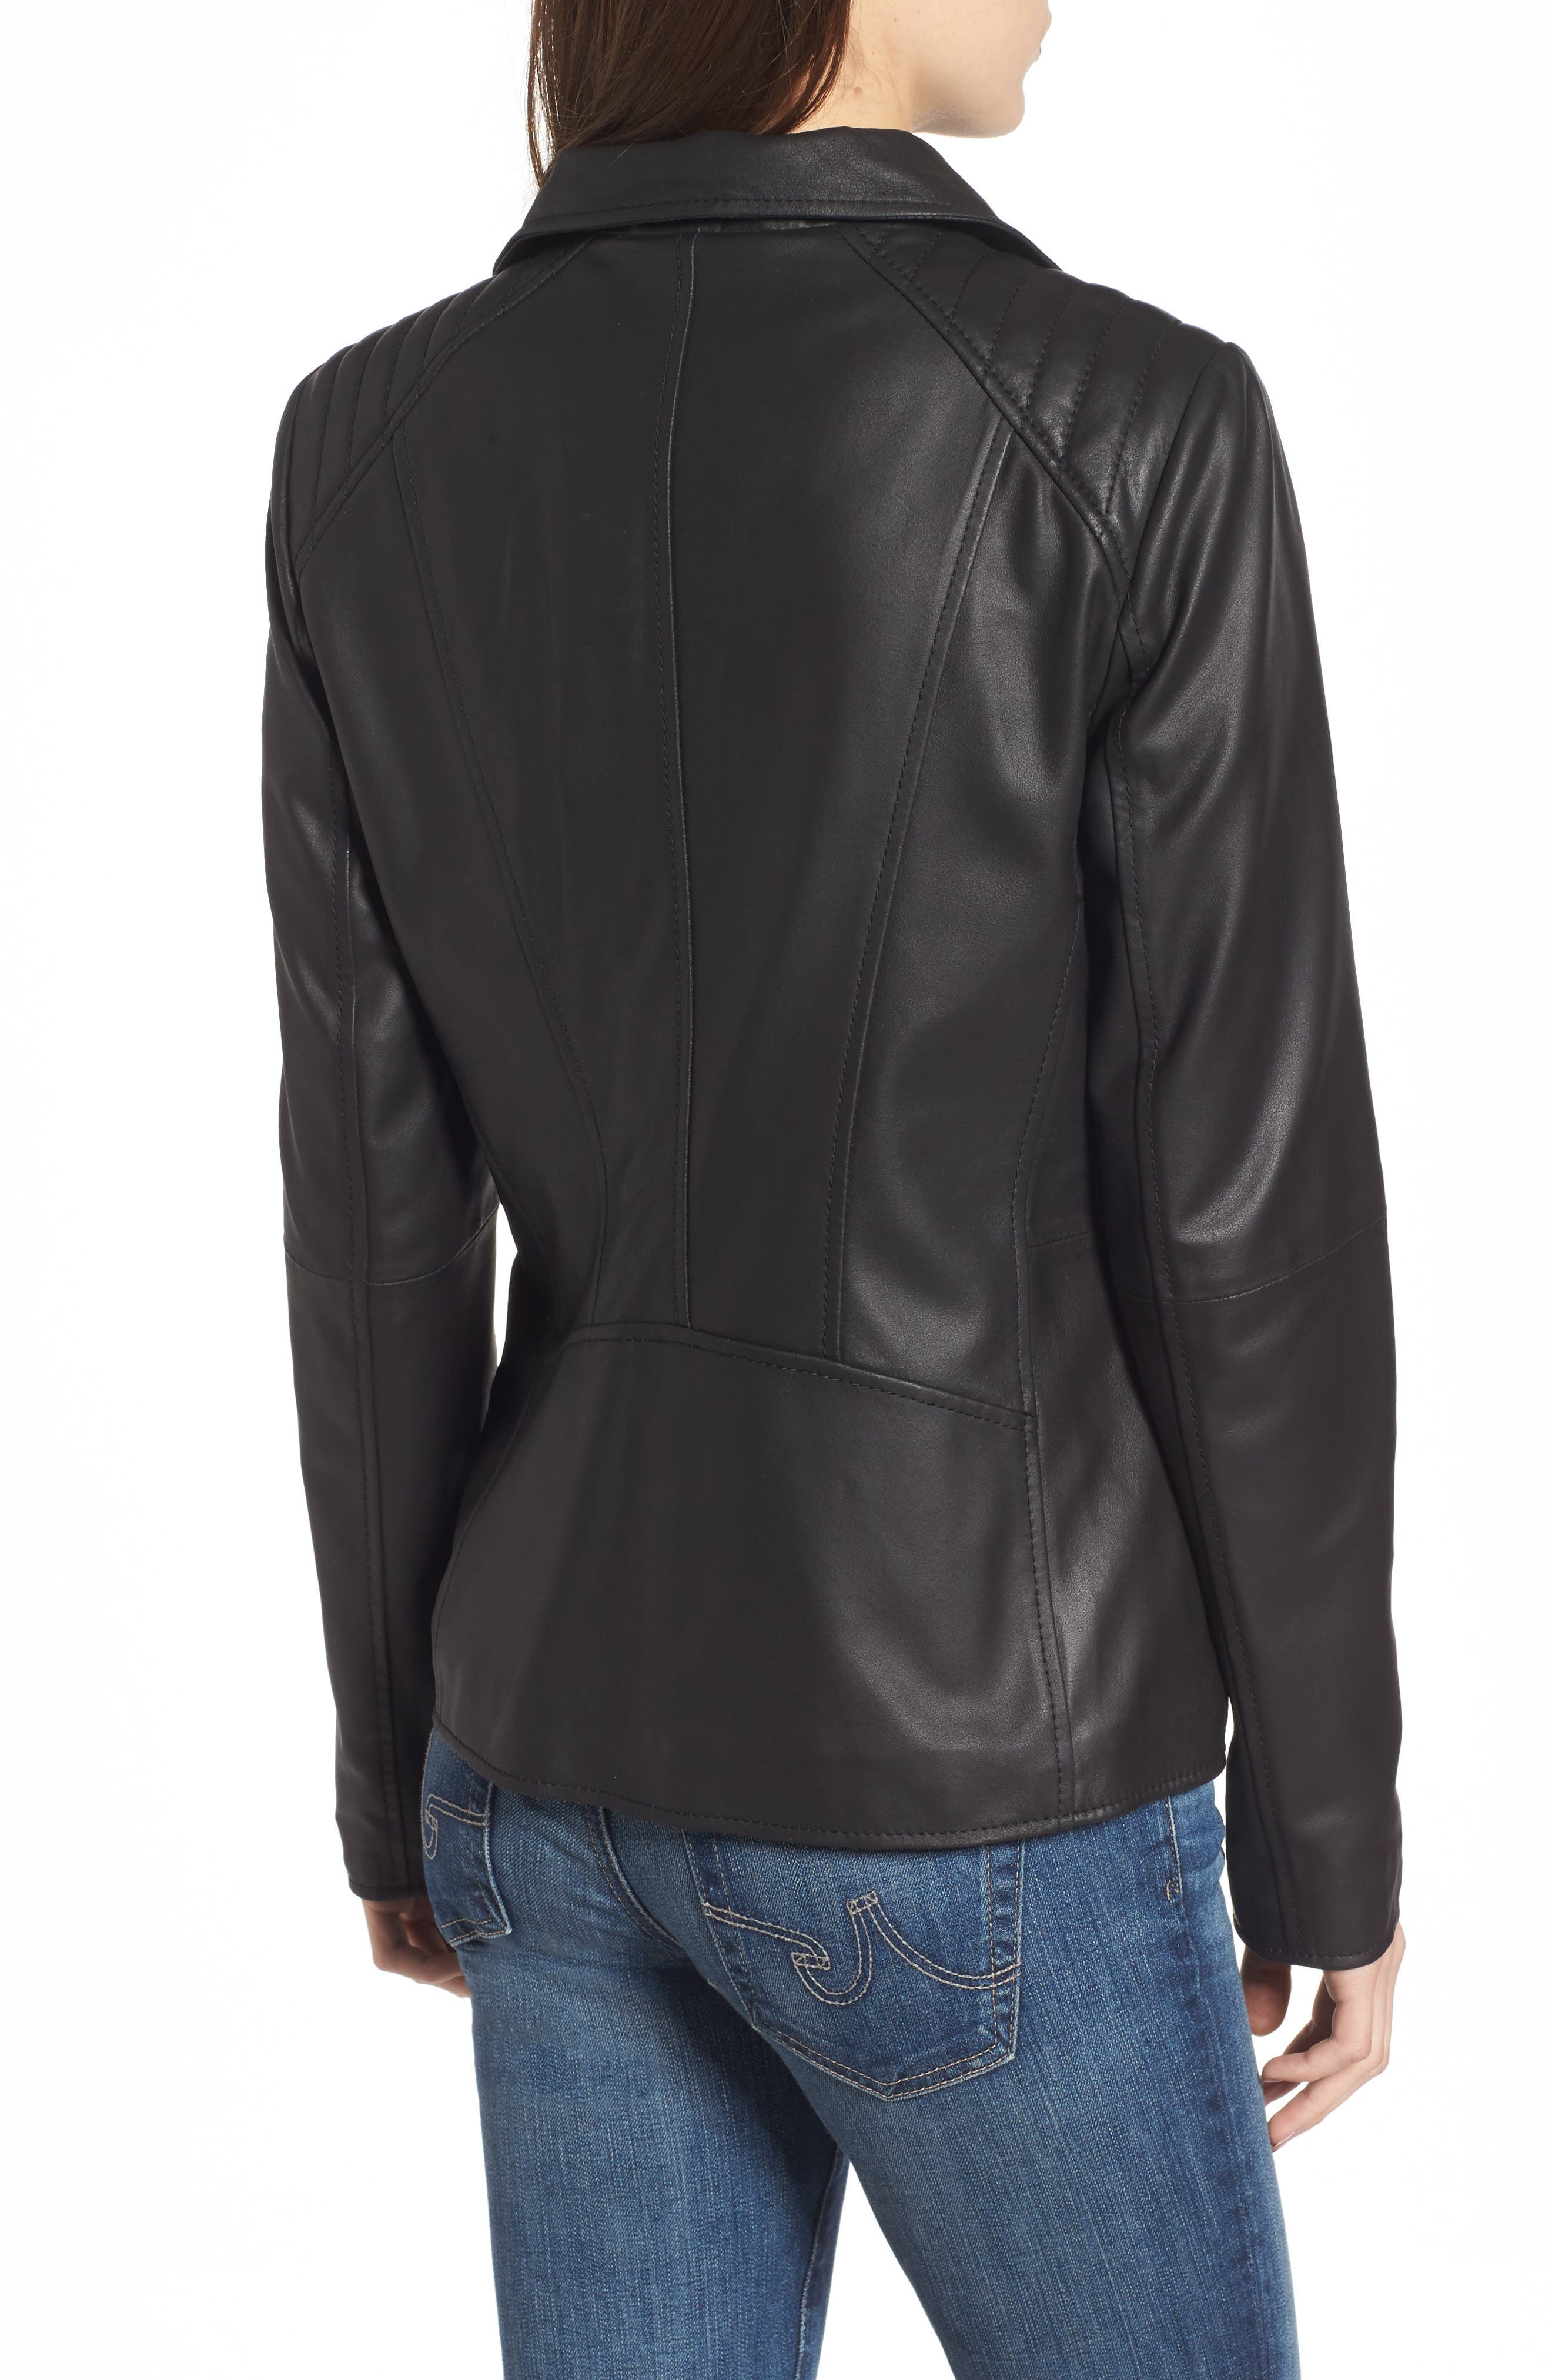 Fabian Feather Leather Jacket,                             Alternate thumbnail 2, color,                             Black